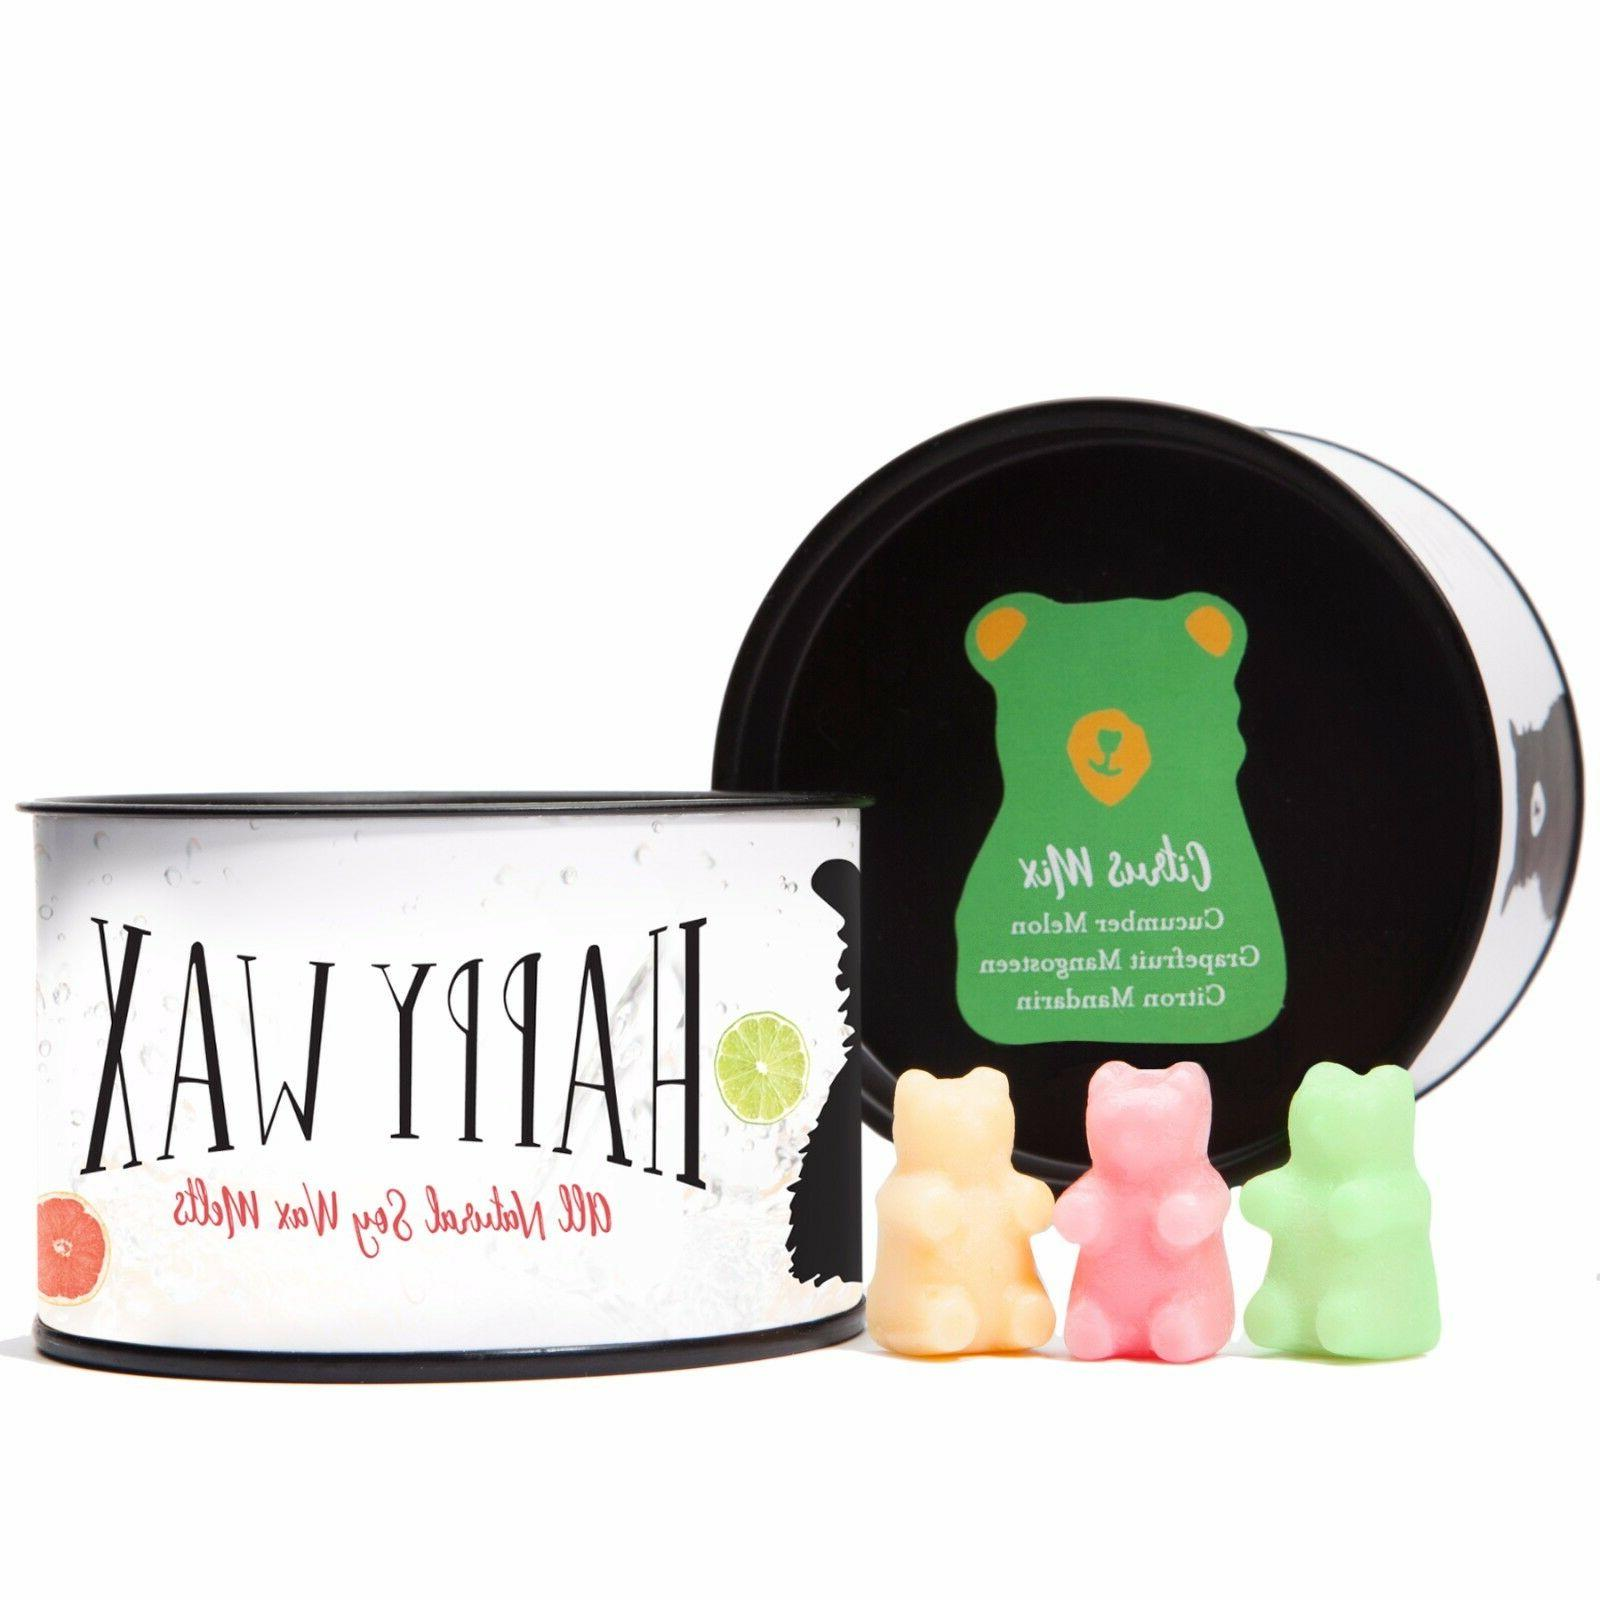 citrus mix scented soy wax melts fun